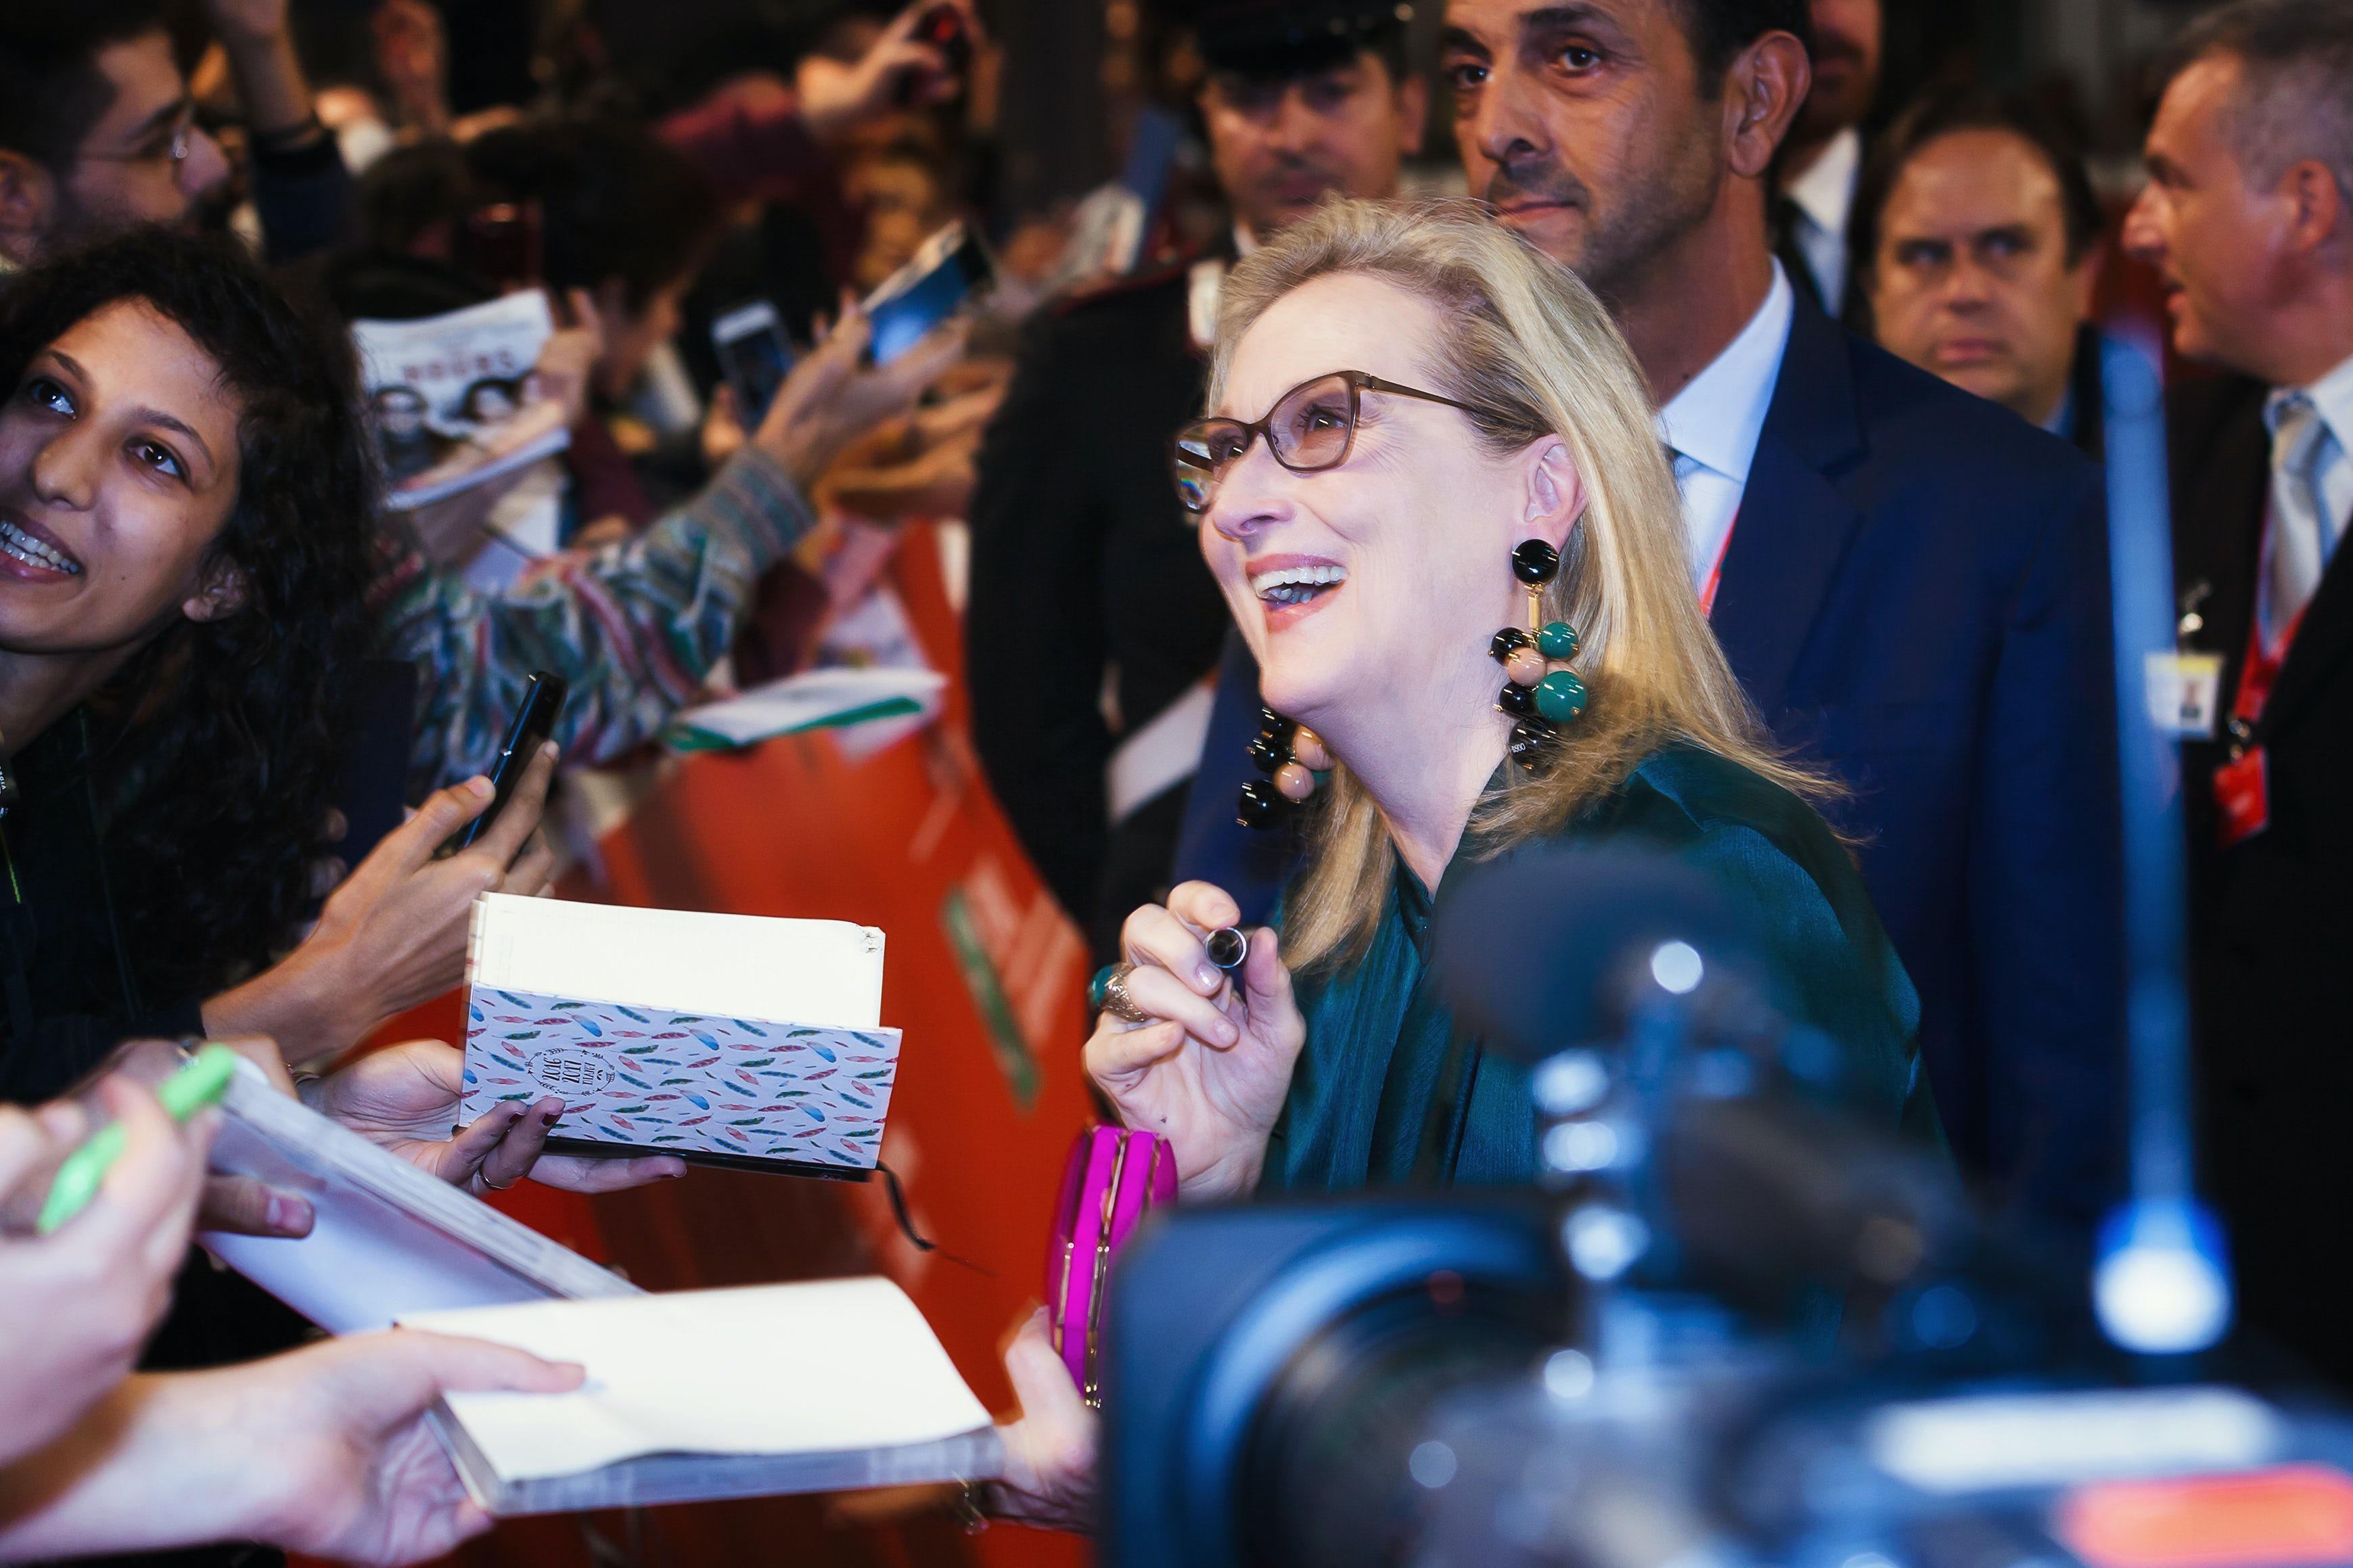 Meryl Streep on the red carpet in 2016   Source: Shutterstock